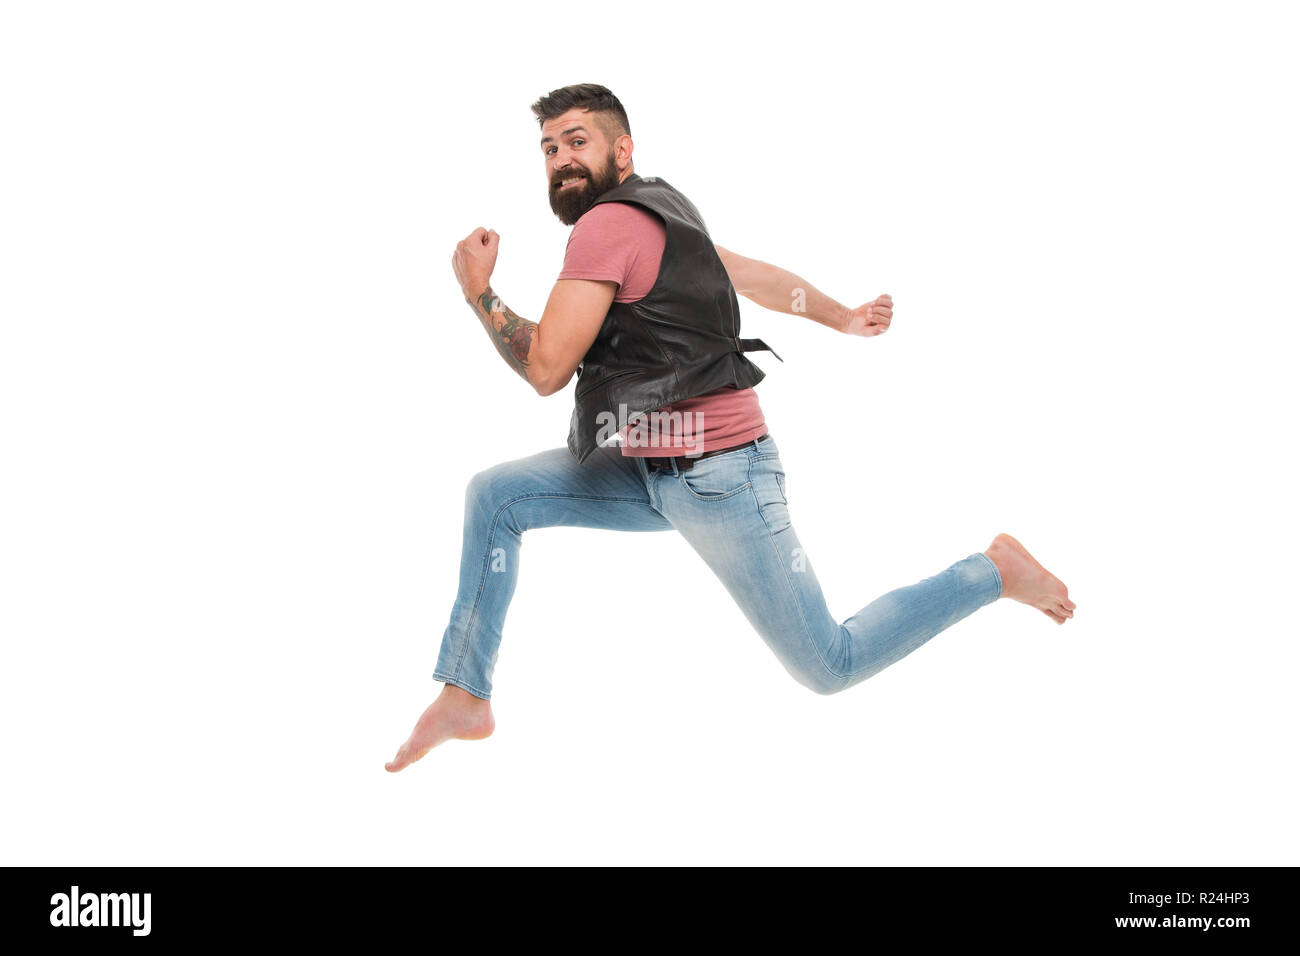 Never stop. Man thief run away. Keep moving concept. Guy bearded hipster captured in running motion isolated on white background. Bearded man running high speed. Escape and runaway. Running motion. - Stock Image